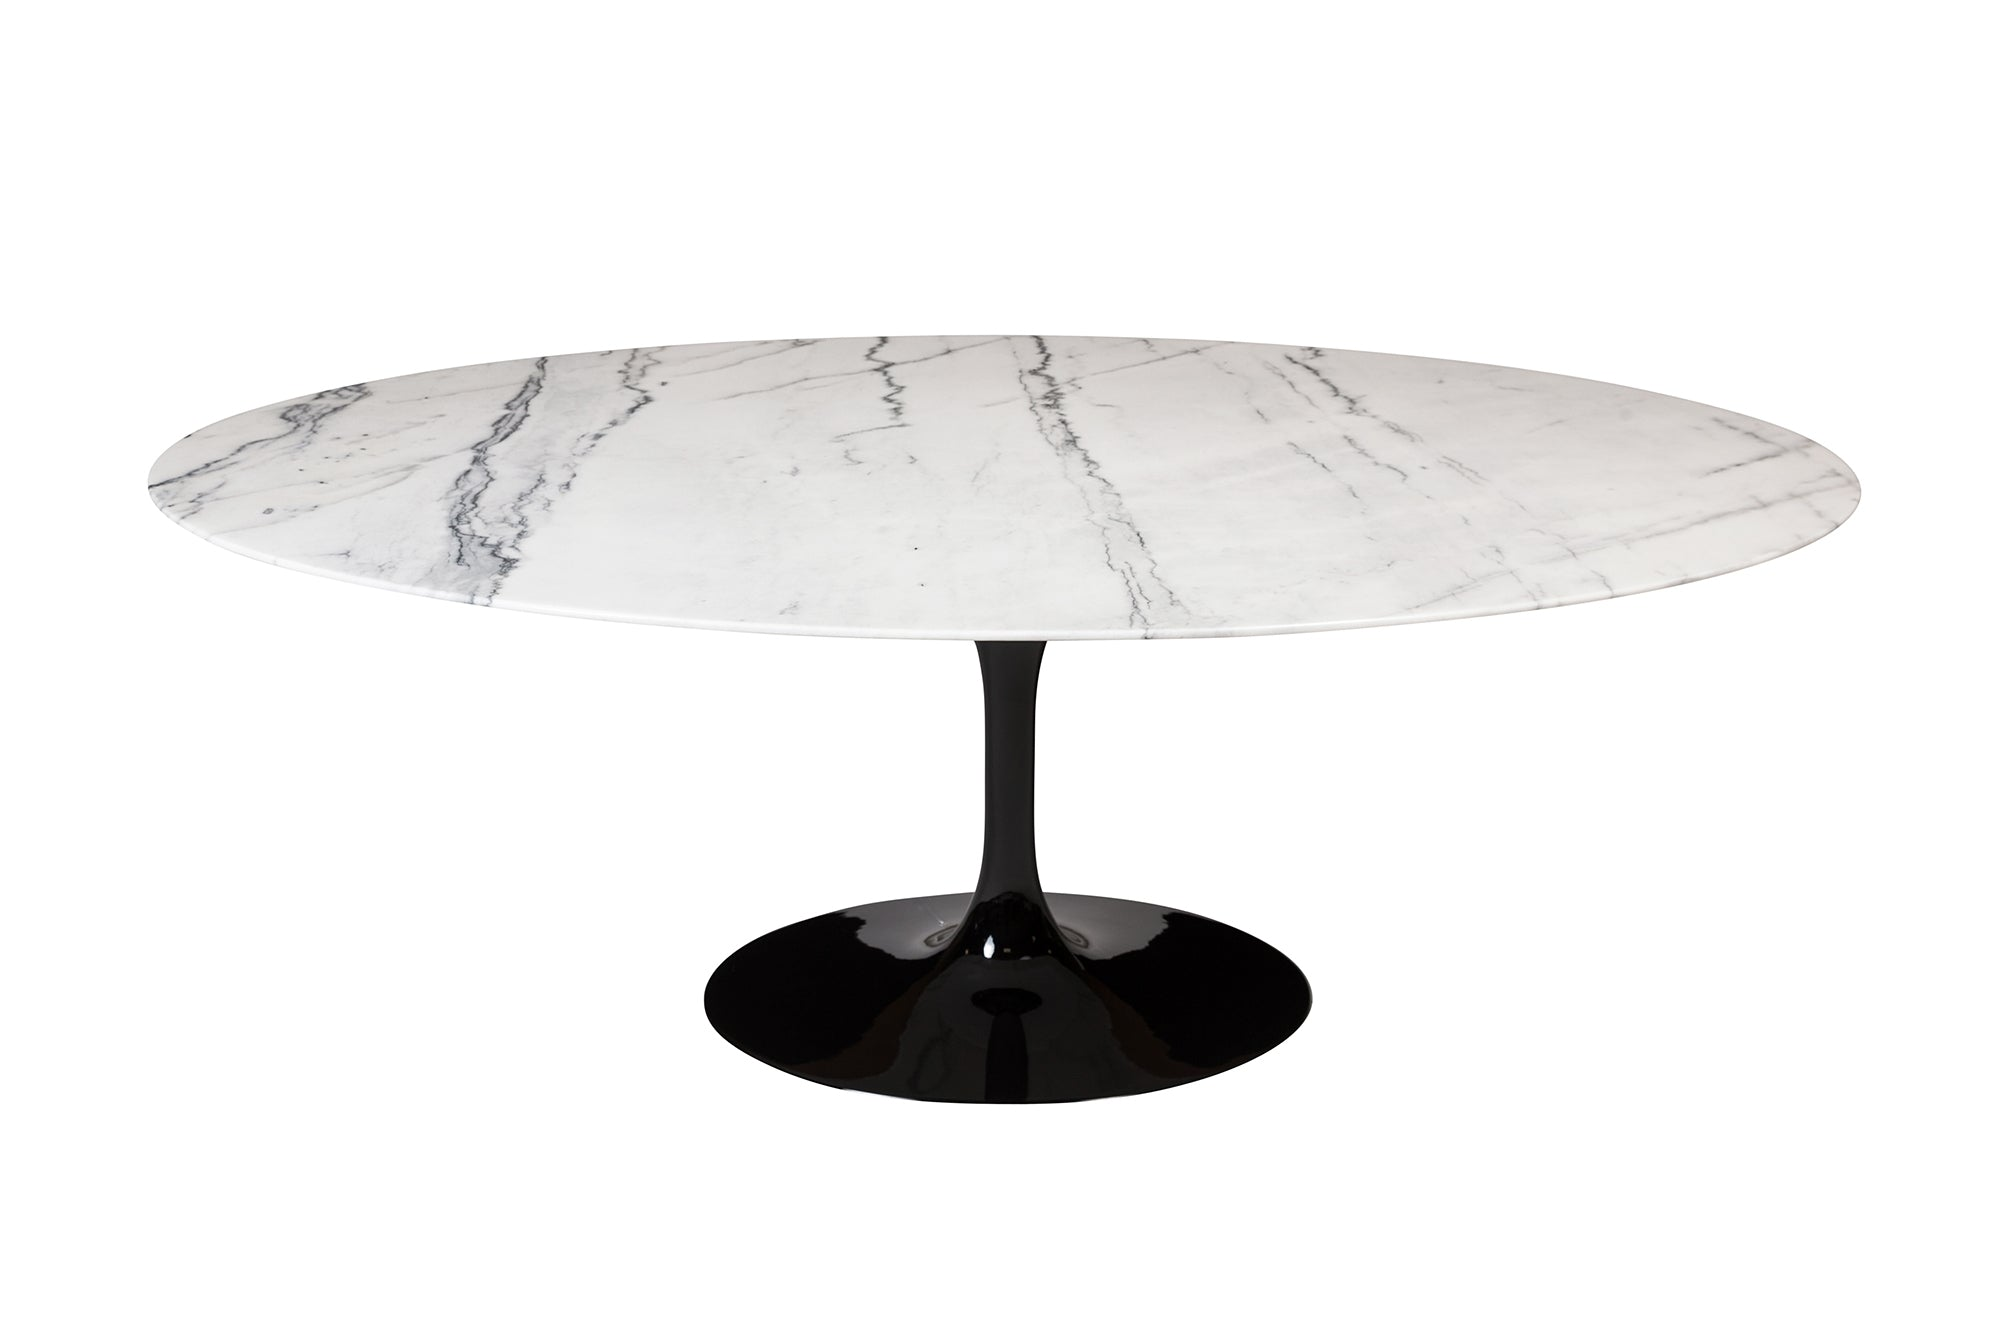 Saarinen oval marble table